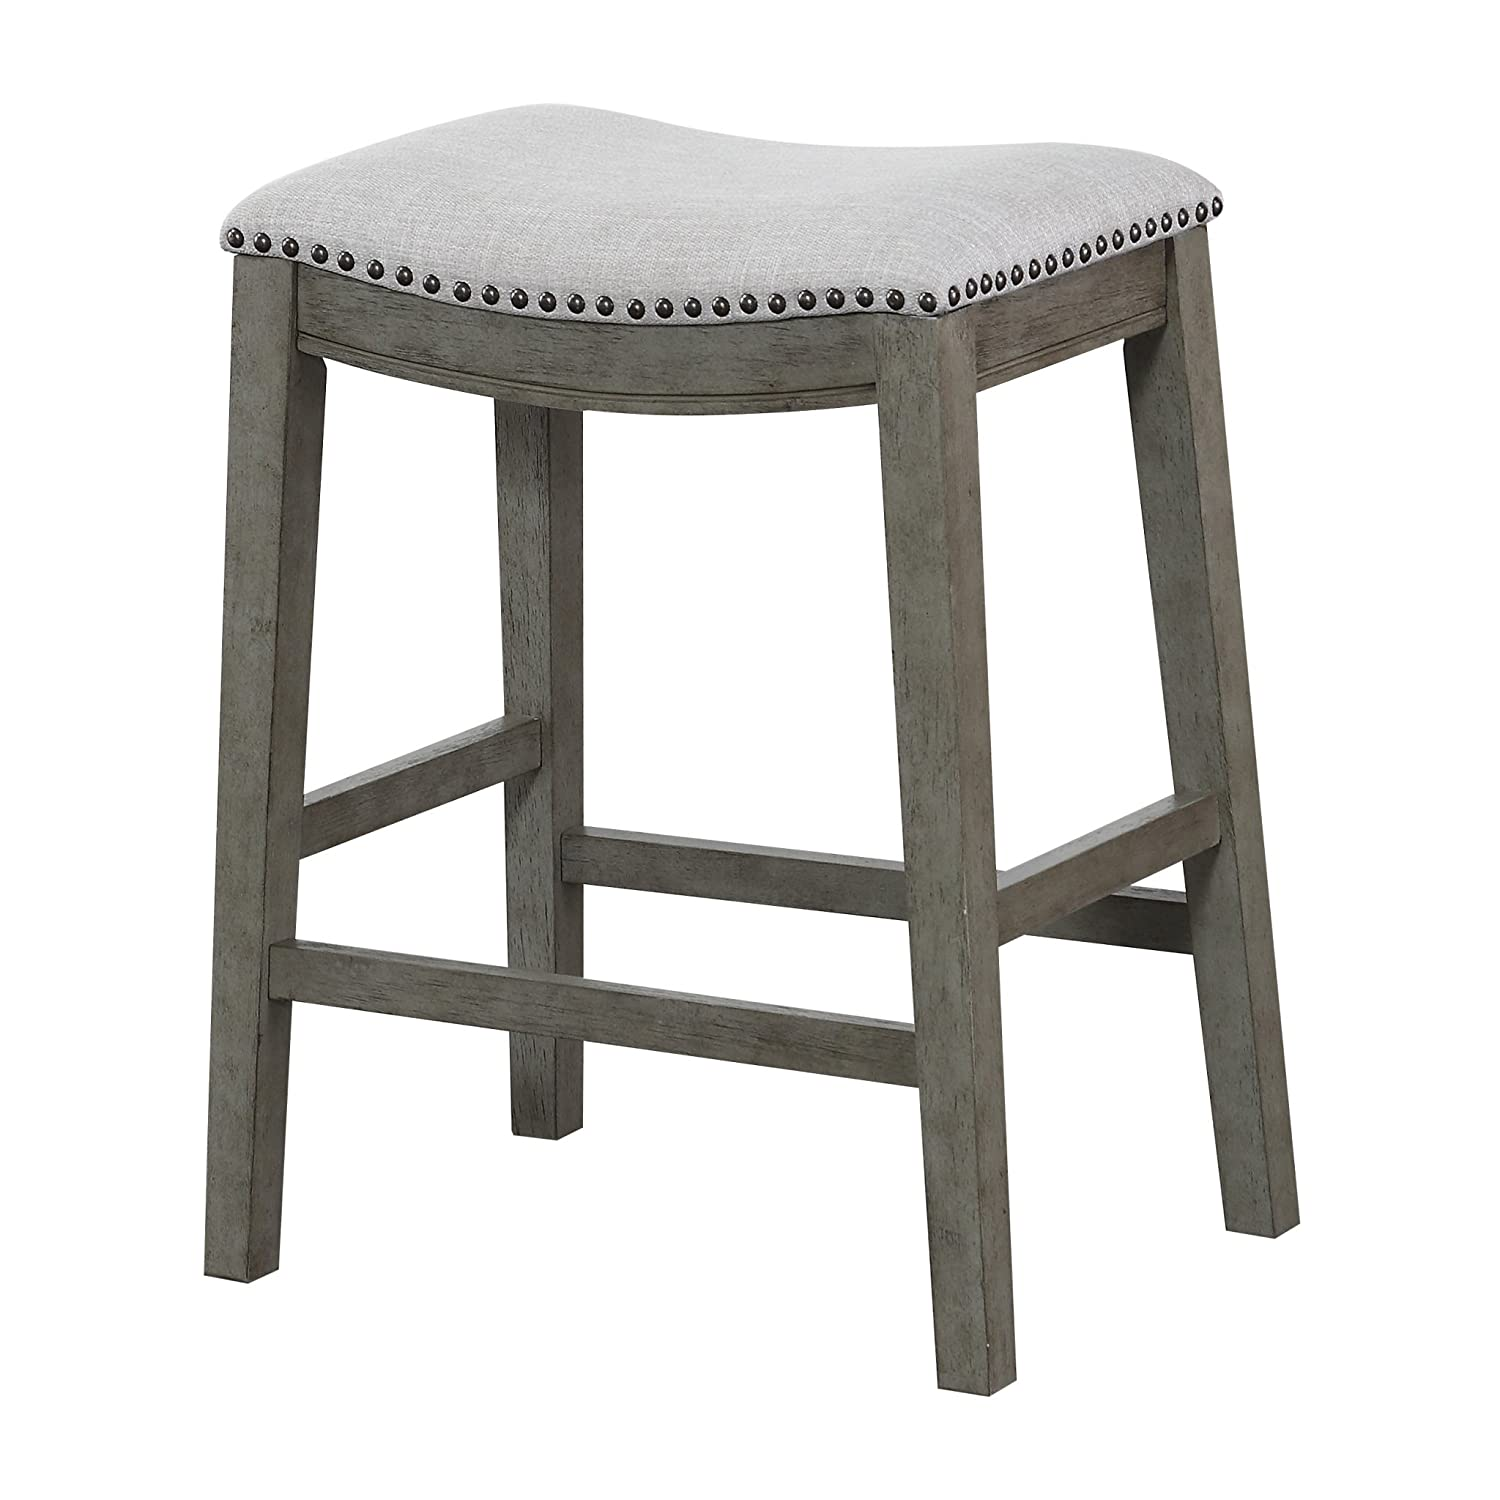 Office Star Saddle Stool with Antique Grey Base, 24-Inch, Grey Fabric